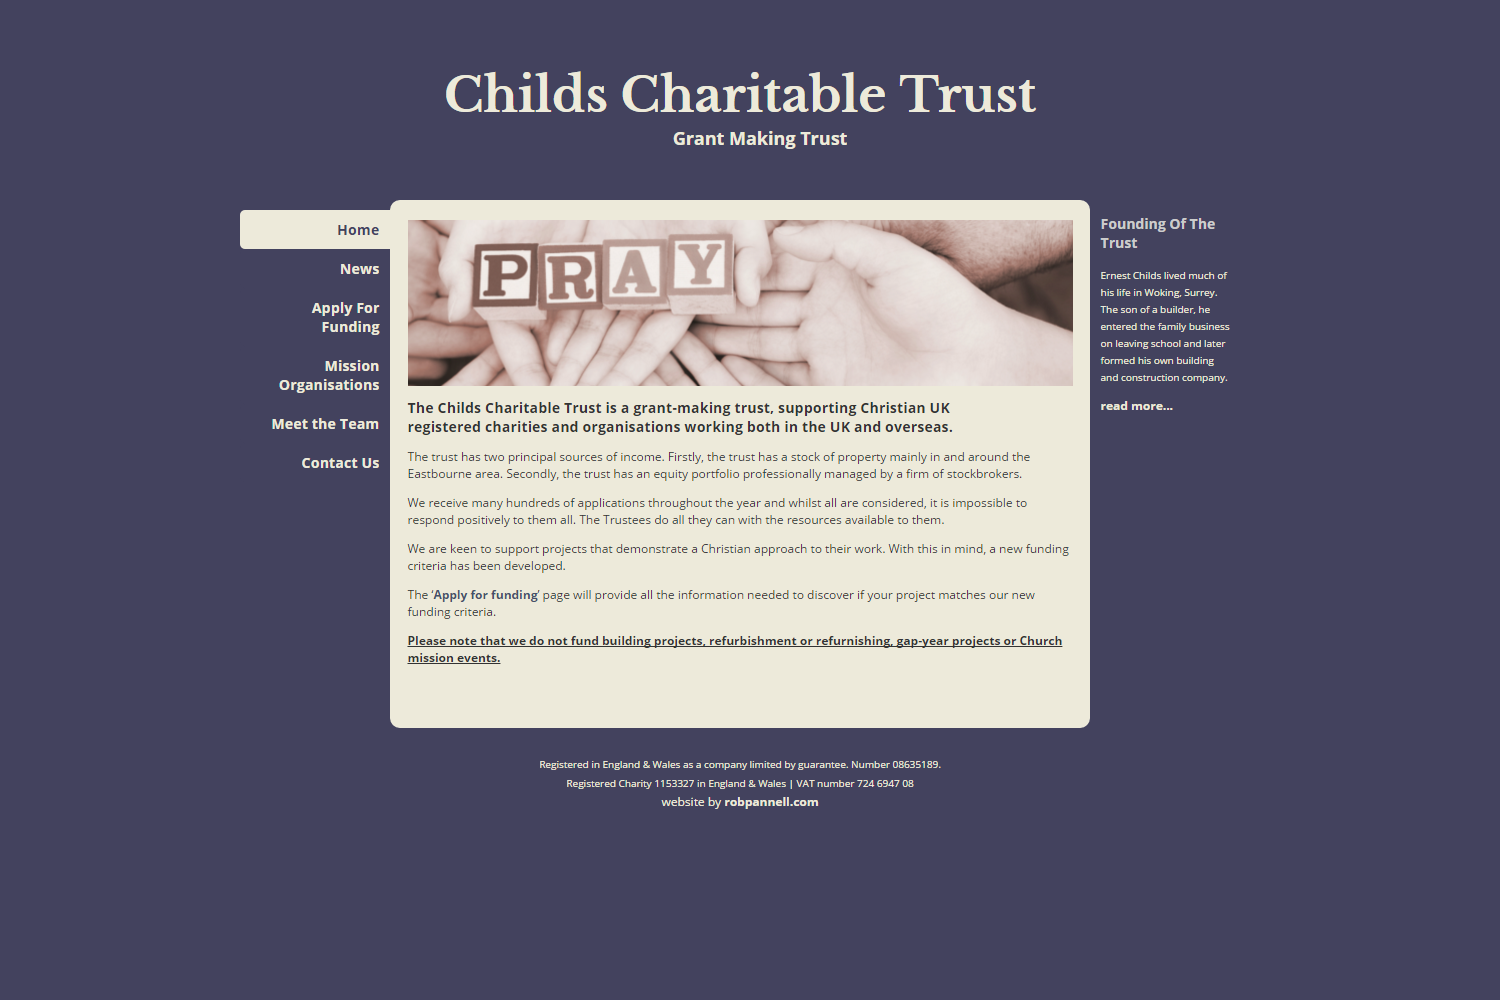 childstrust.org